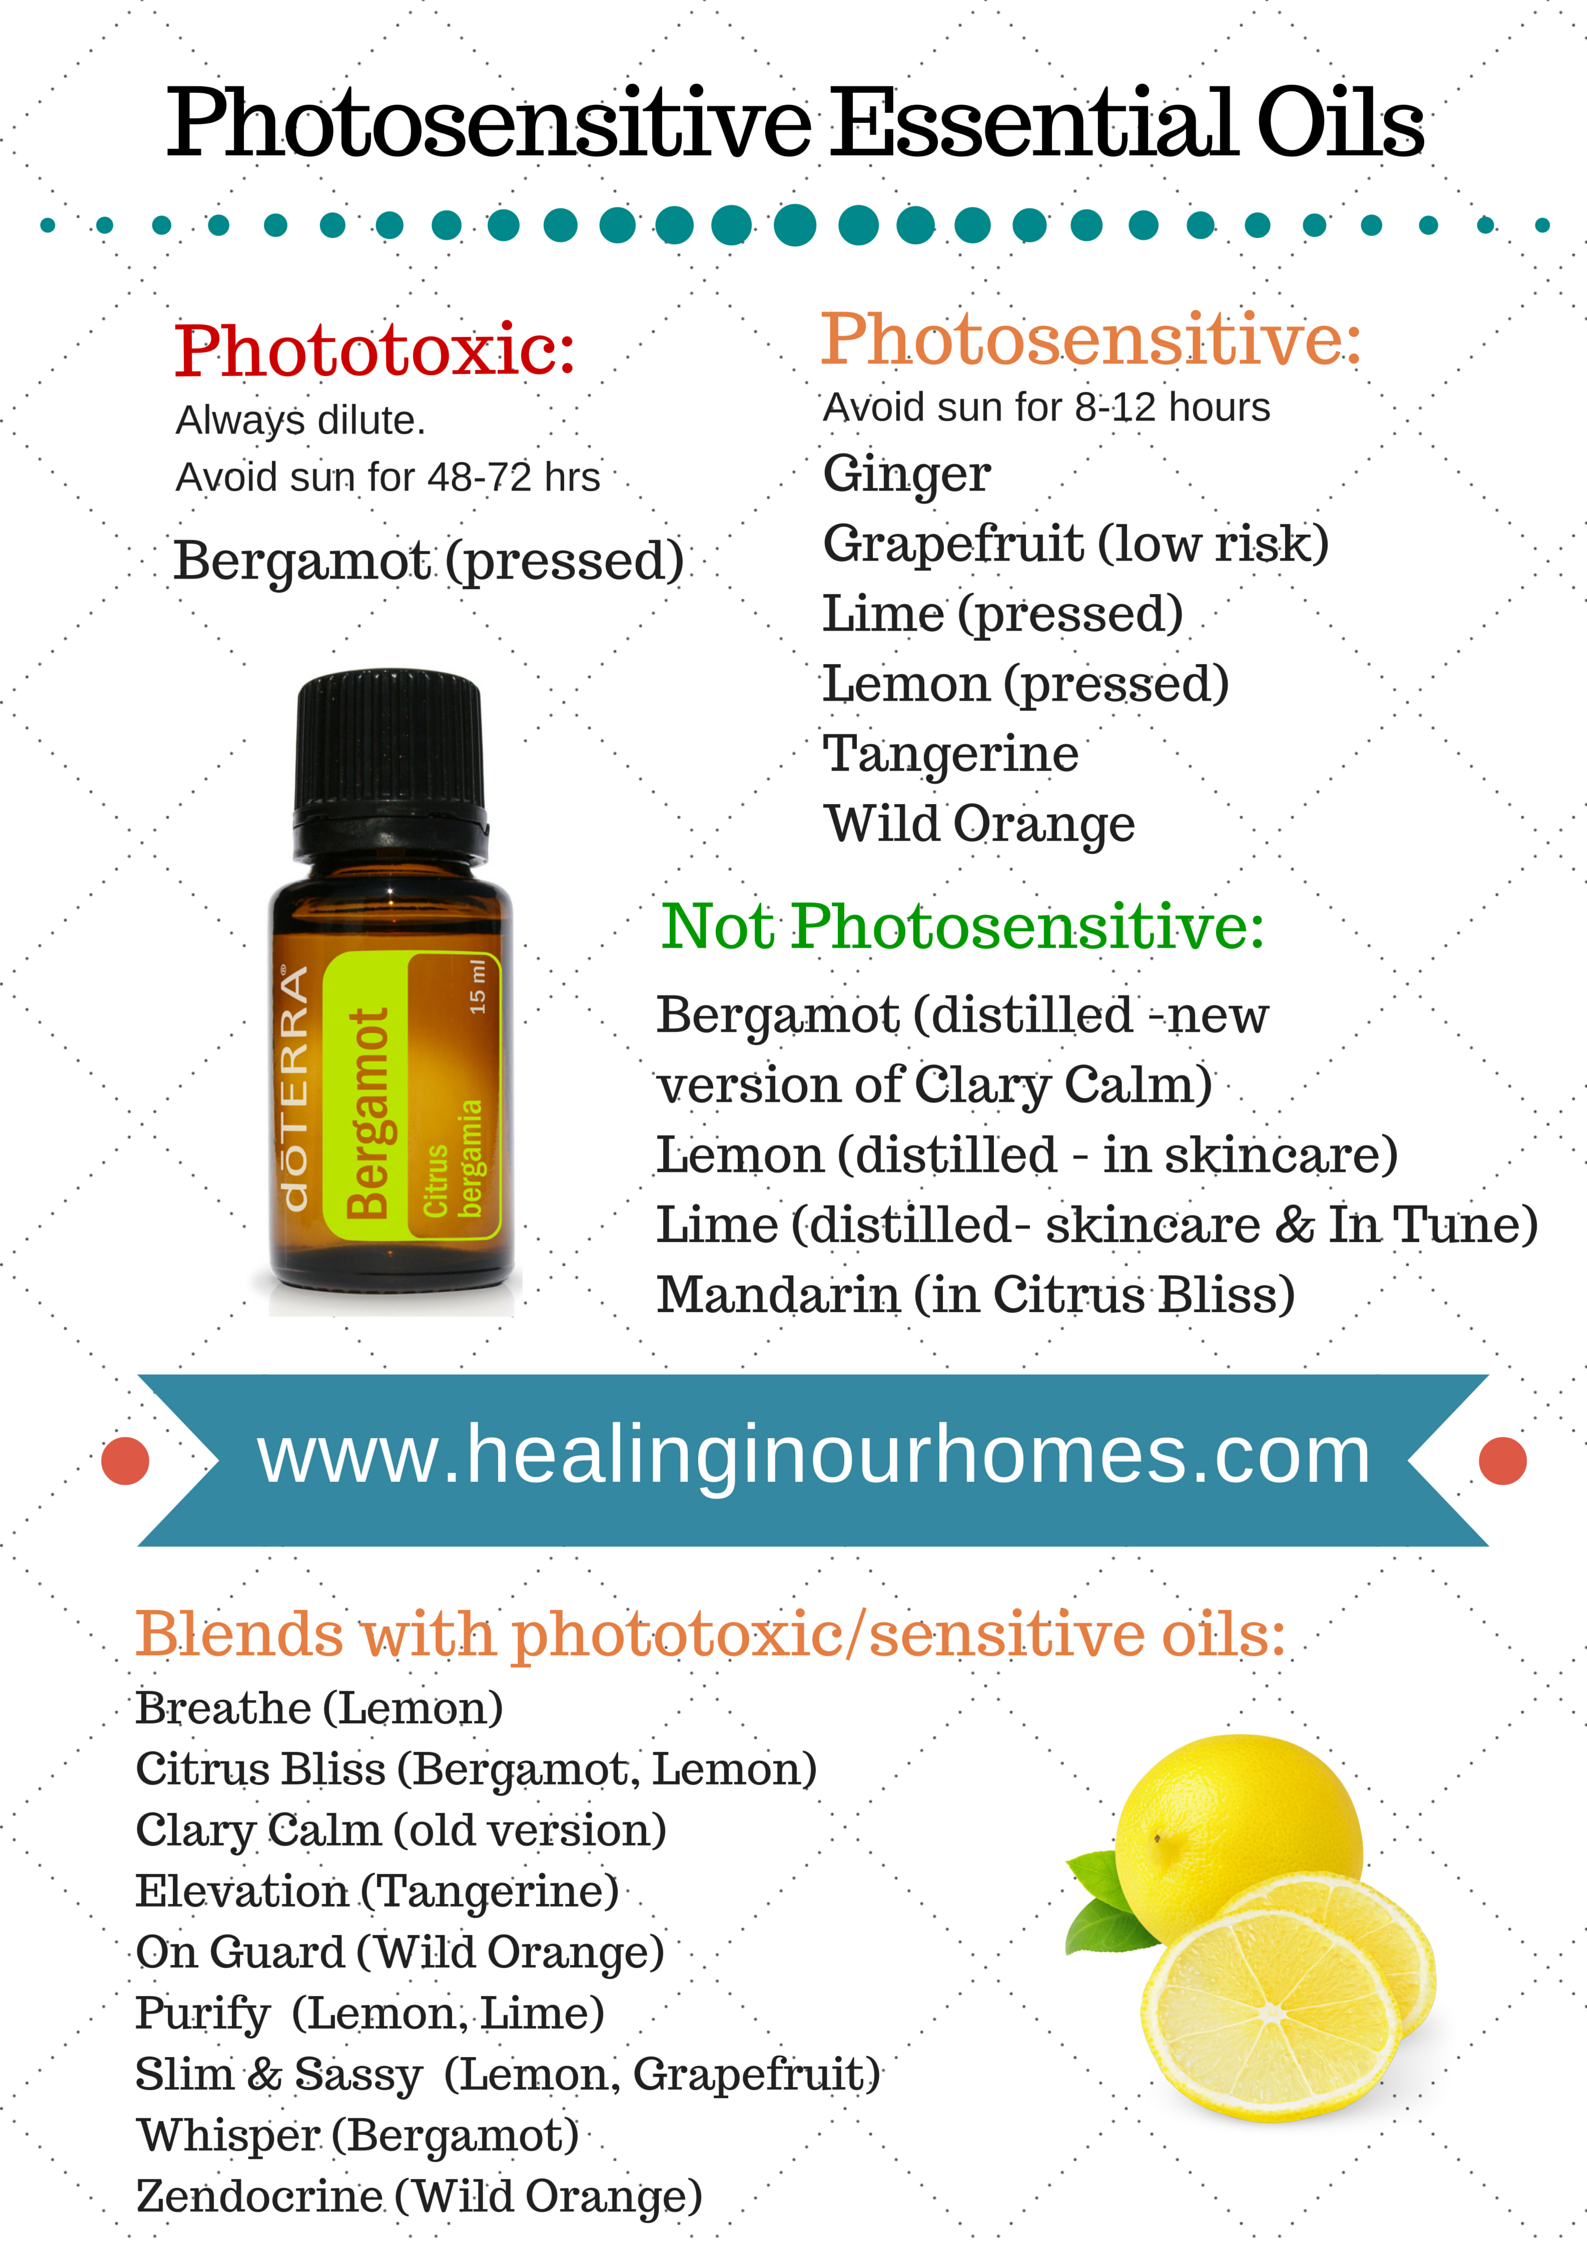 Here are some guidelines for which oils to avoid for sun-exposed skin.